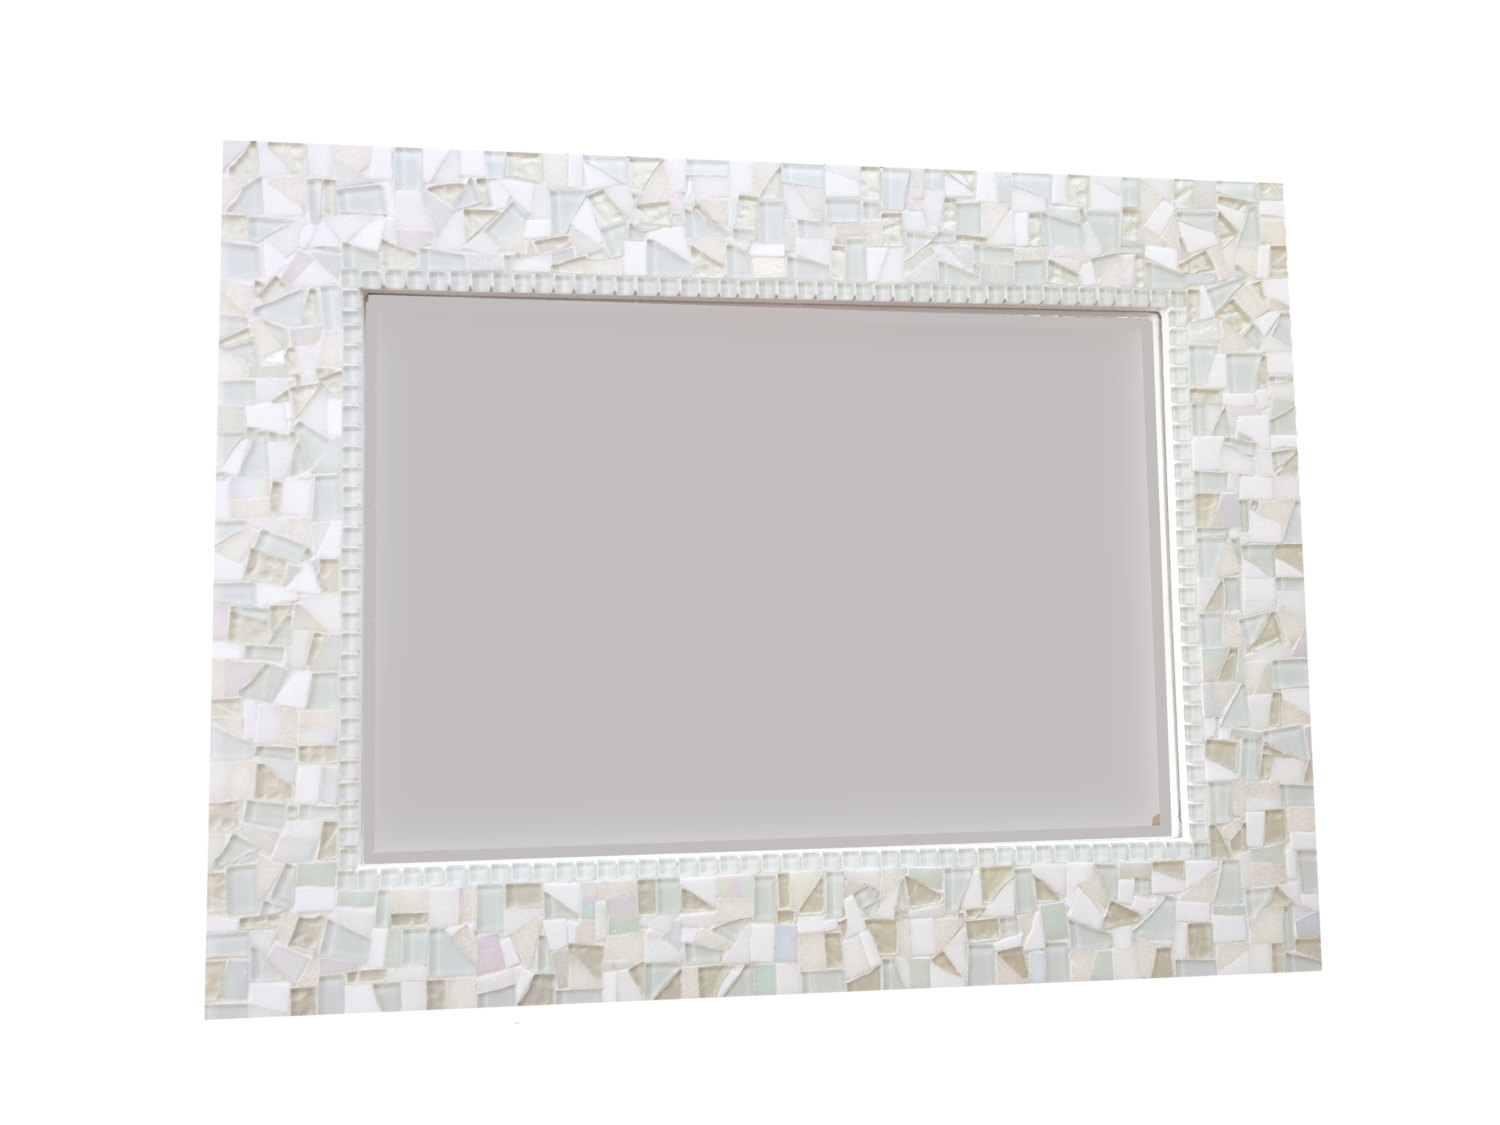 Mosaic Mirror Etsy With Large Mosaic Mirrors (Image 11 of 15)